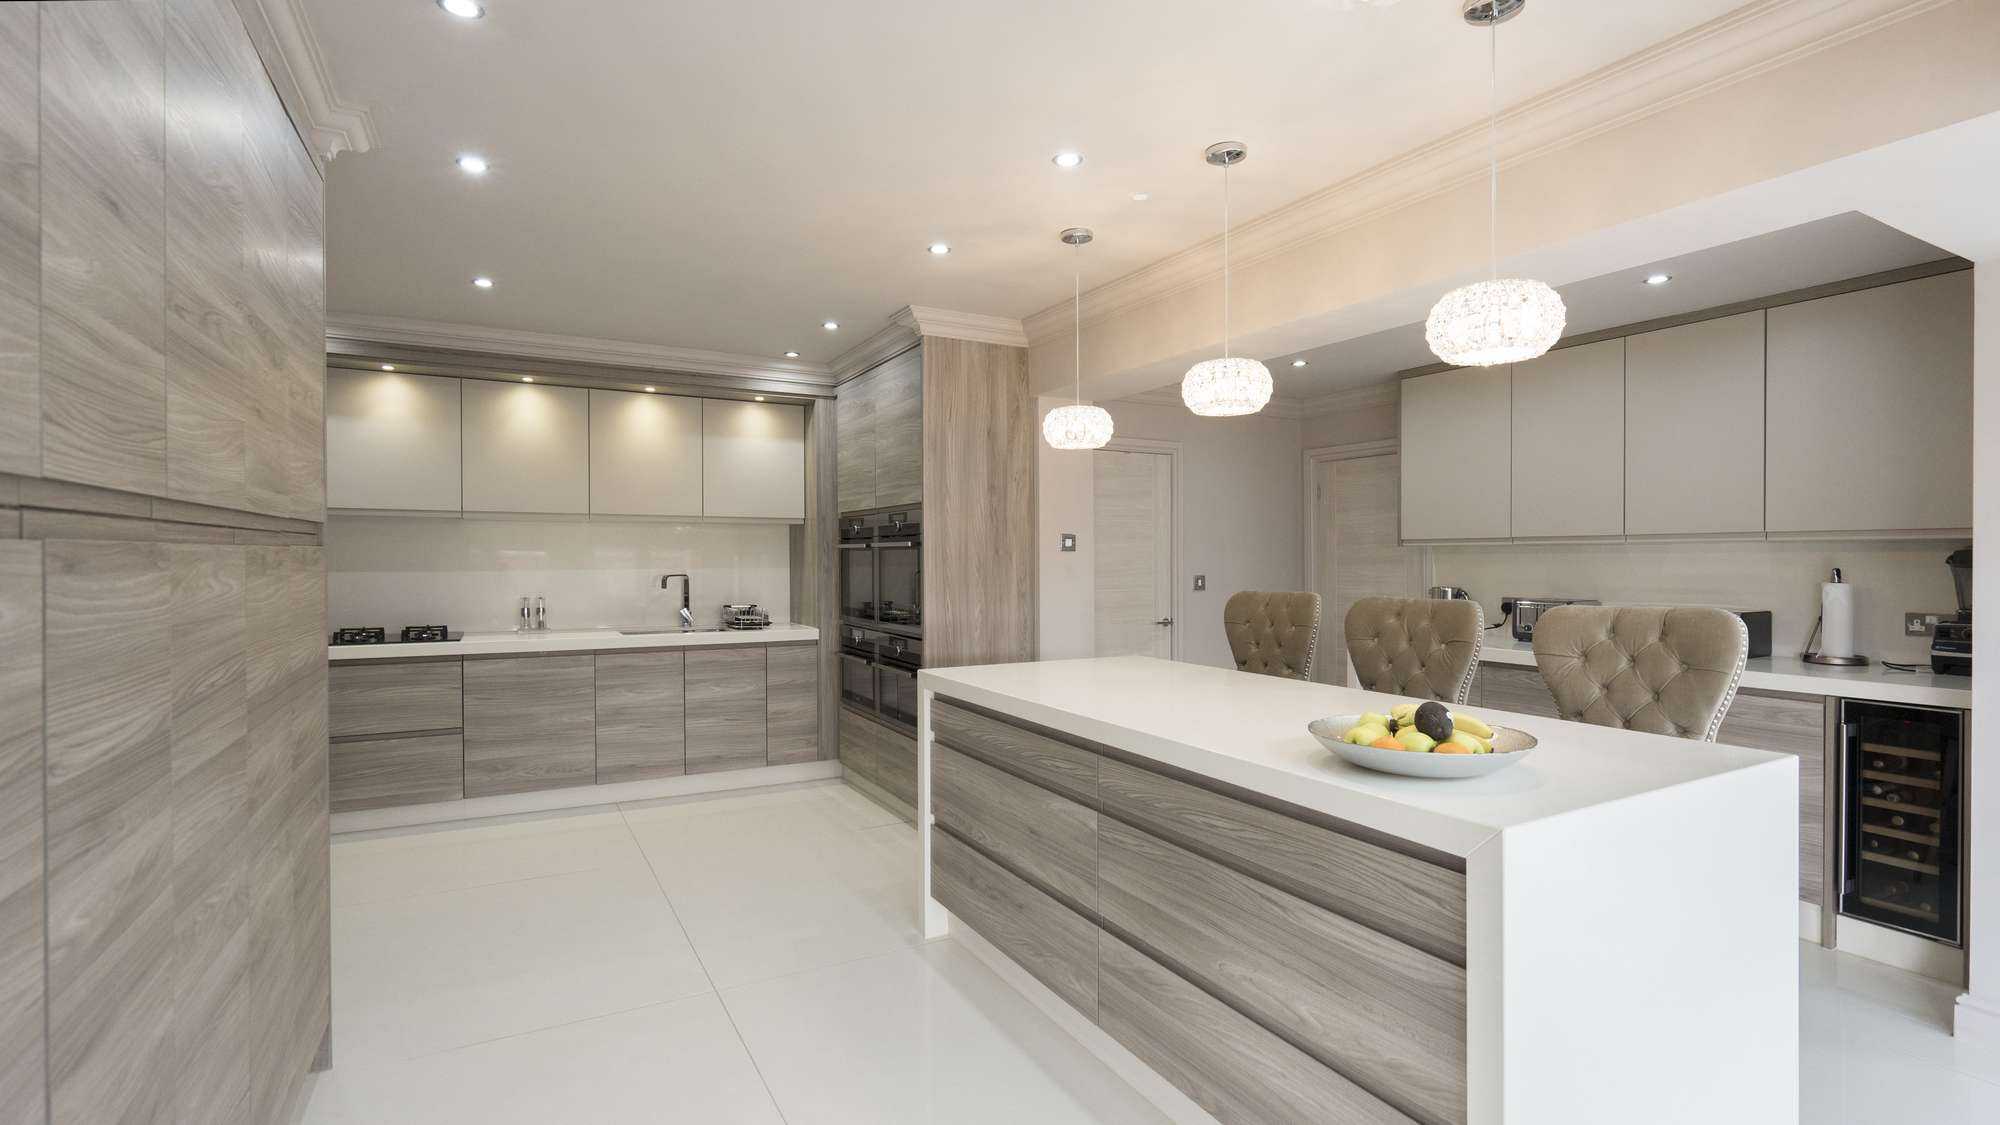 Large kitchen island with up and over granite worktops and button backed stools.